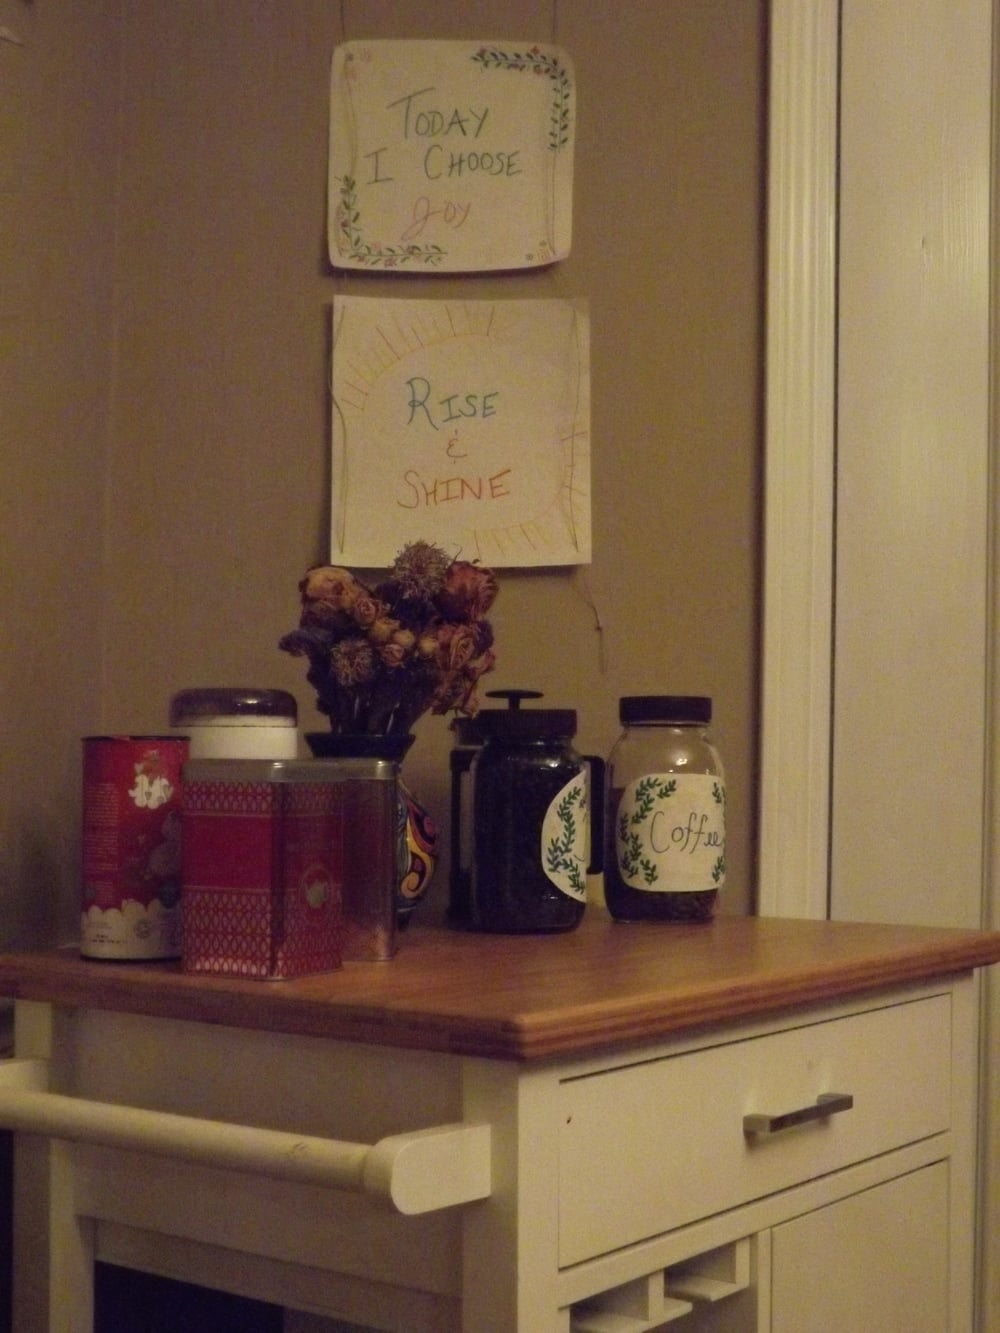 And, the coffee bar, in all its glory. :)